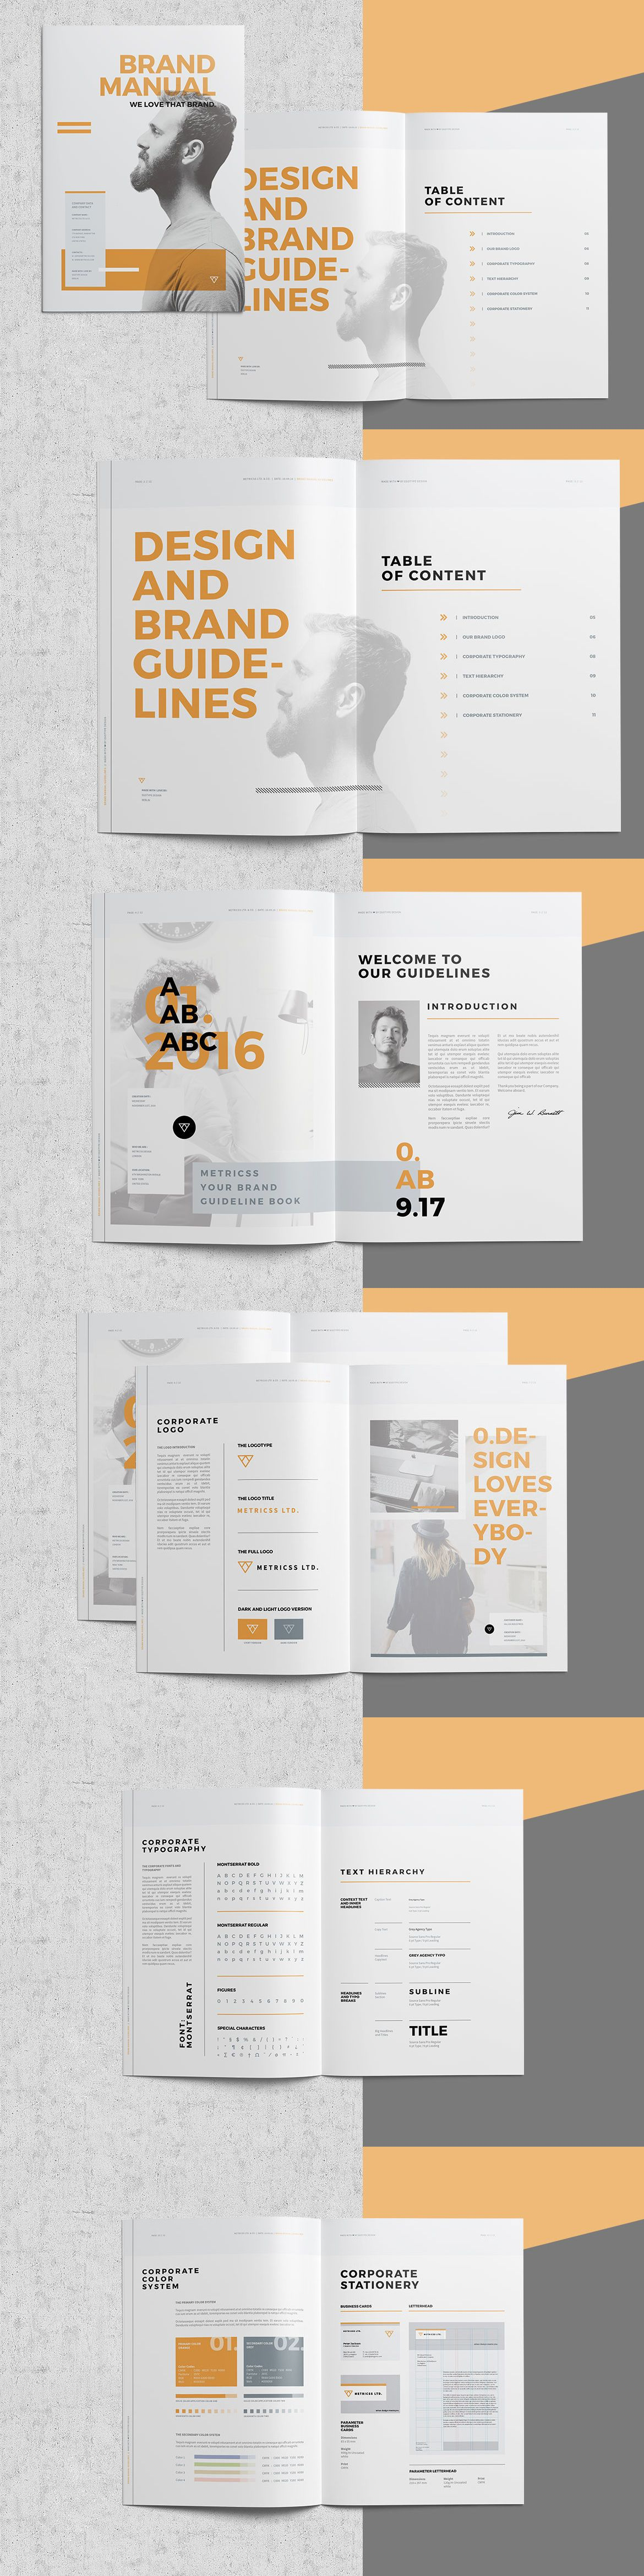 Brand Manual Brochure Template InDesign INDD | Layouts | Pinterest ...